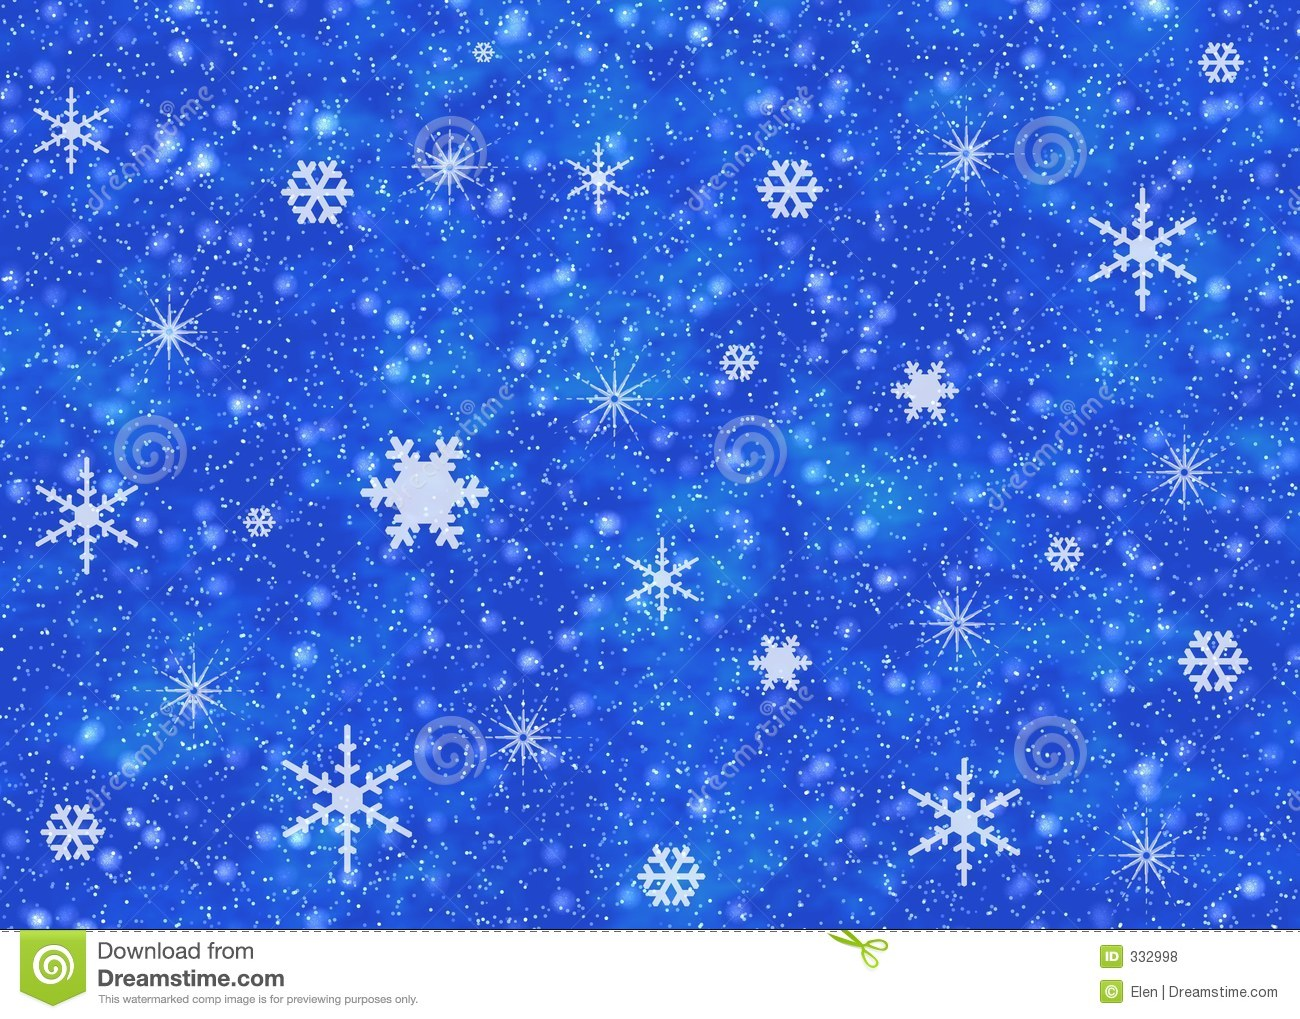 3d Snow Falling Wallpaper Snow Sky Royalty Free Stock Photos Image 332998